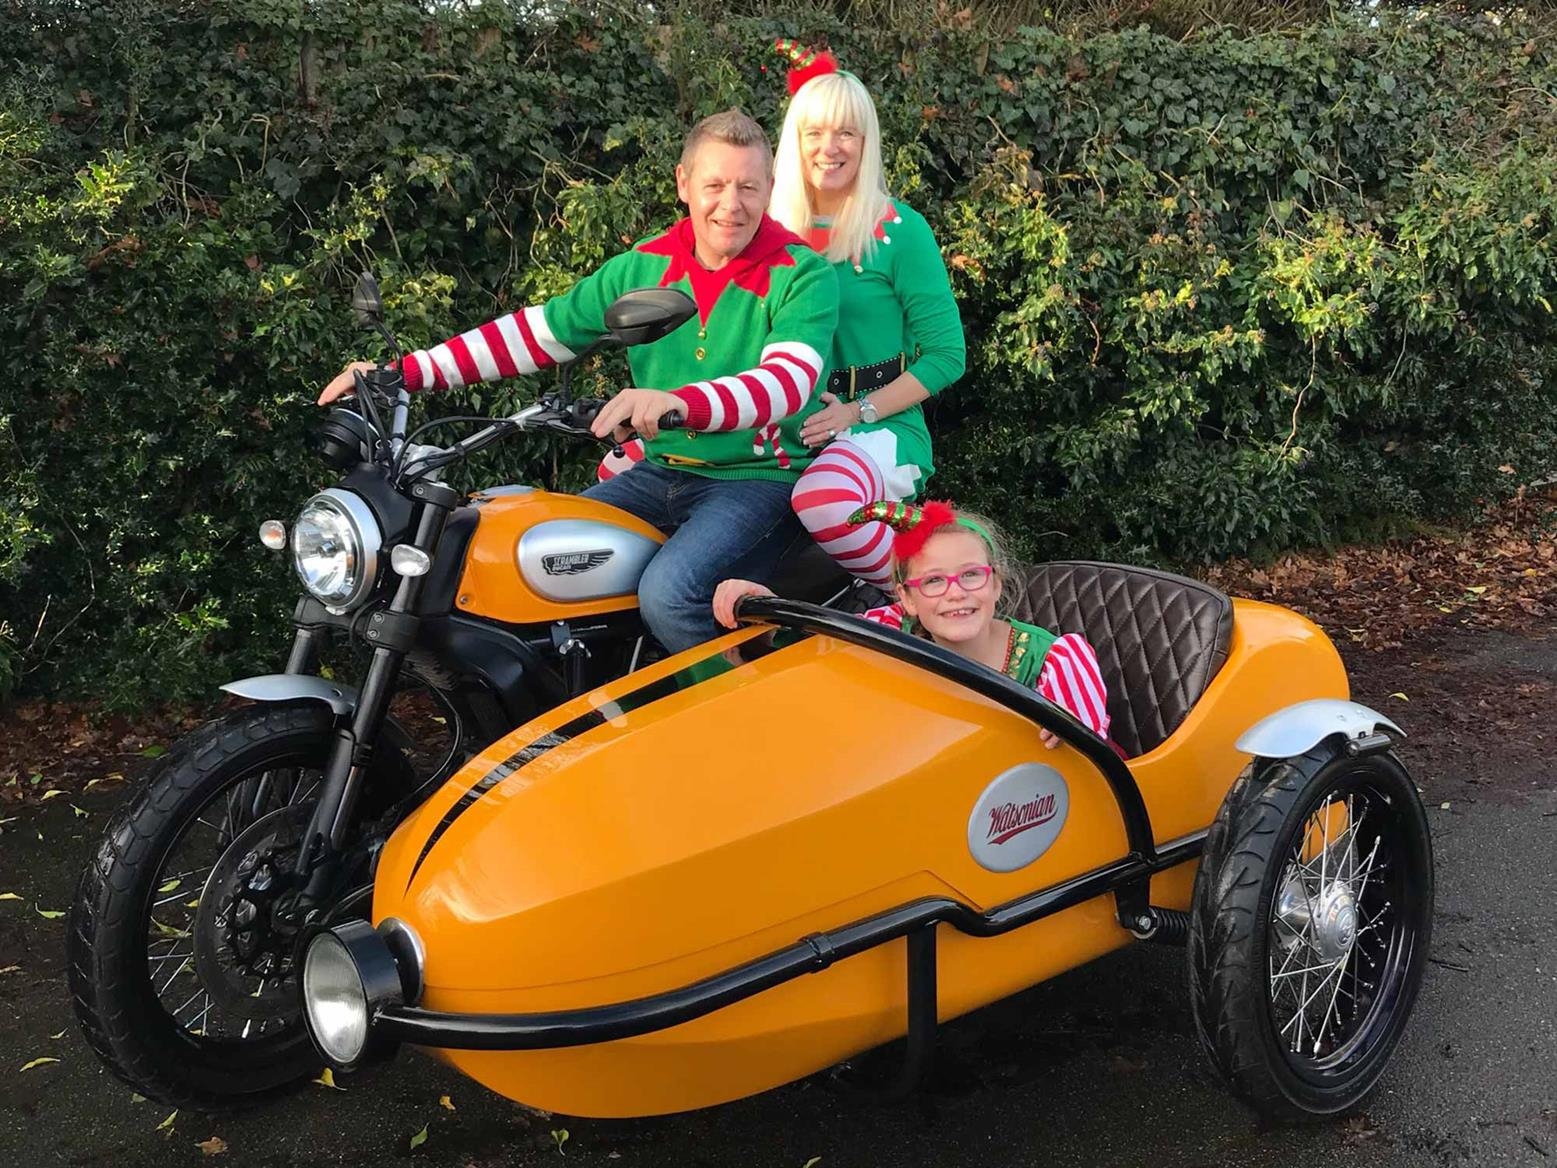 Chris Walker and family aboard their Ducati Scrambler and sidecar